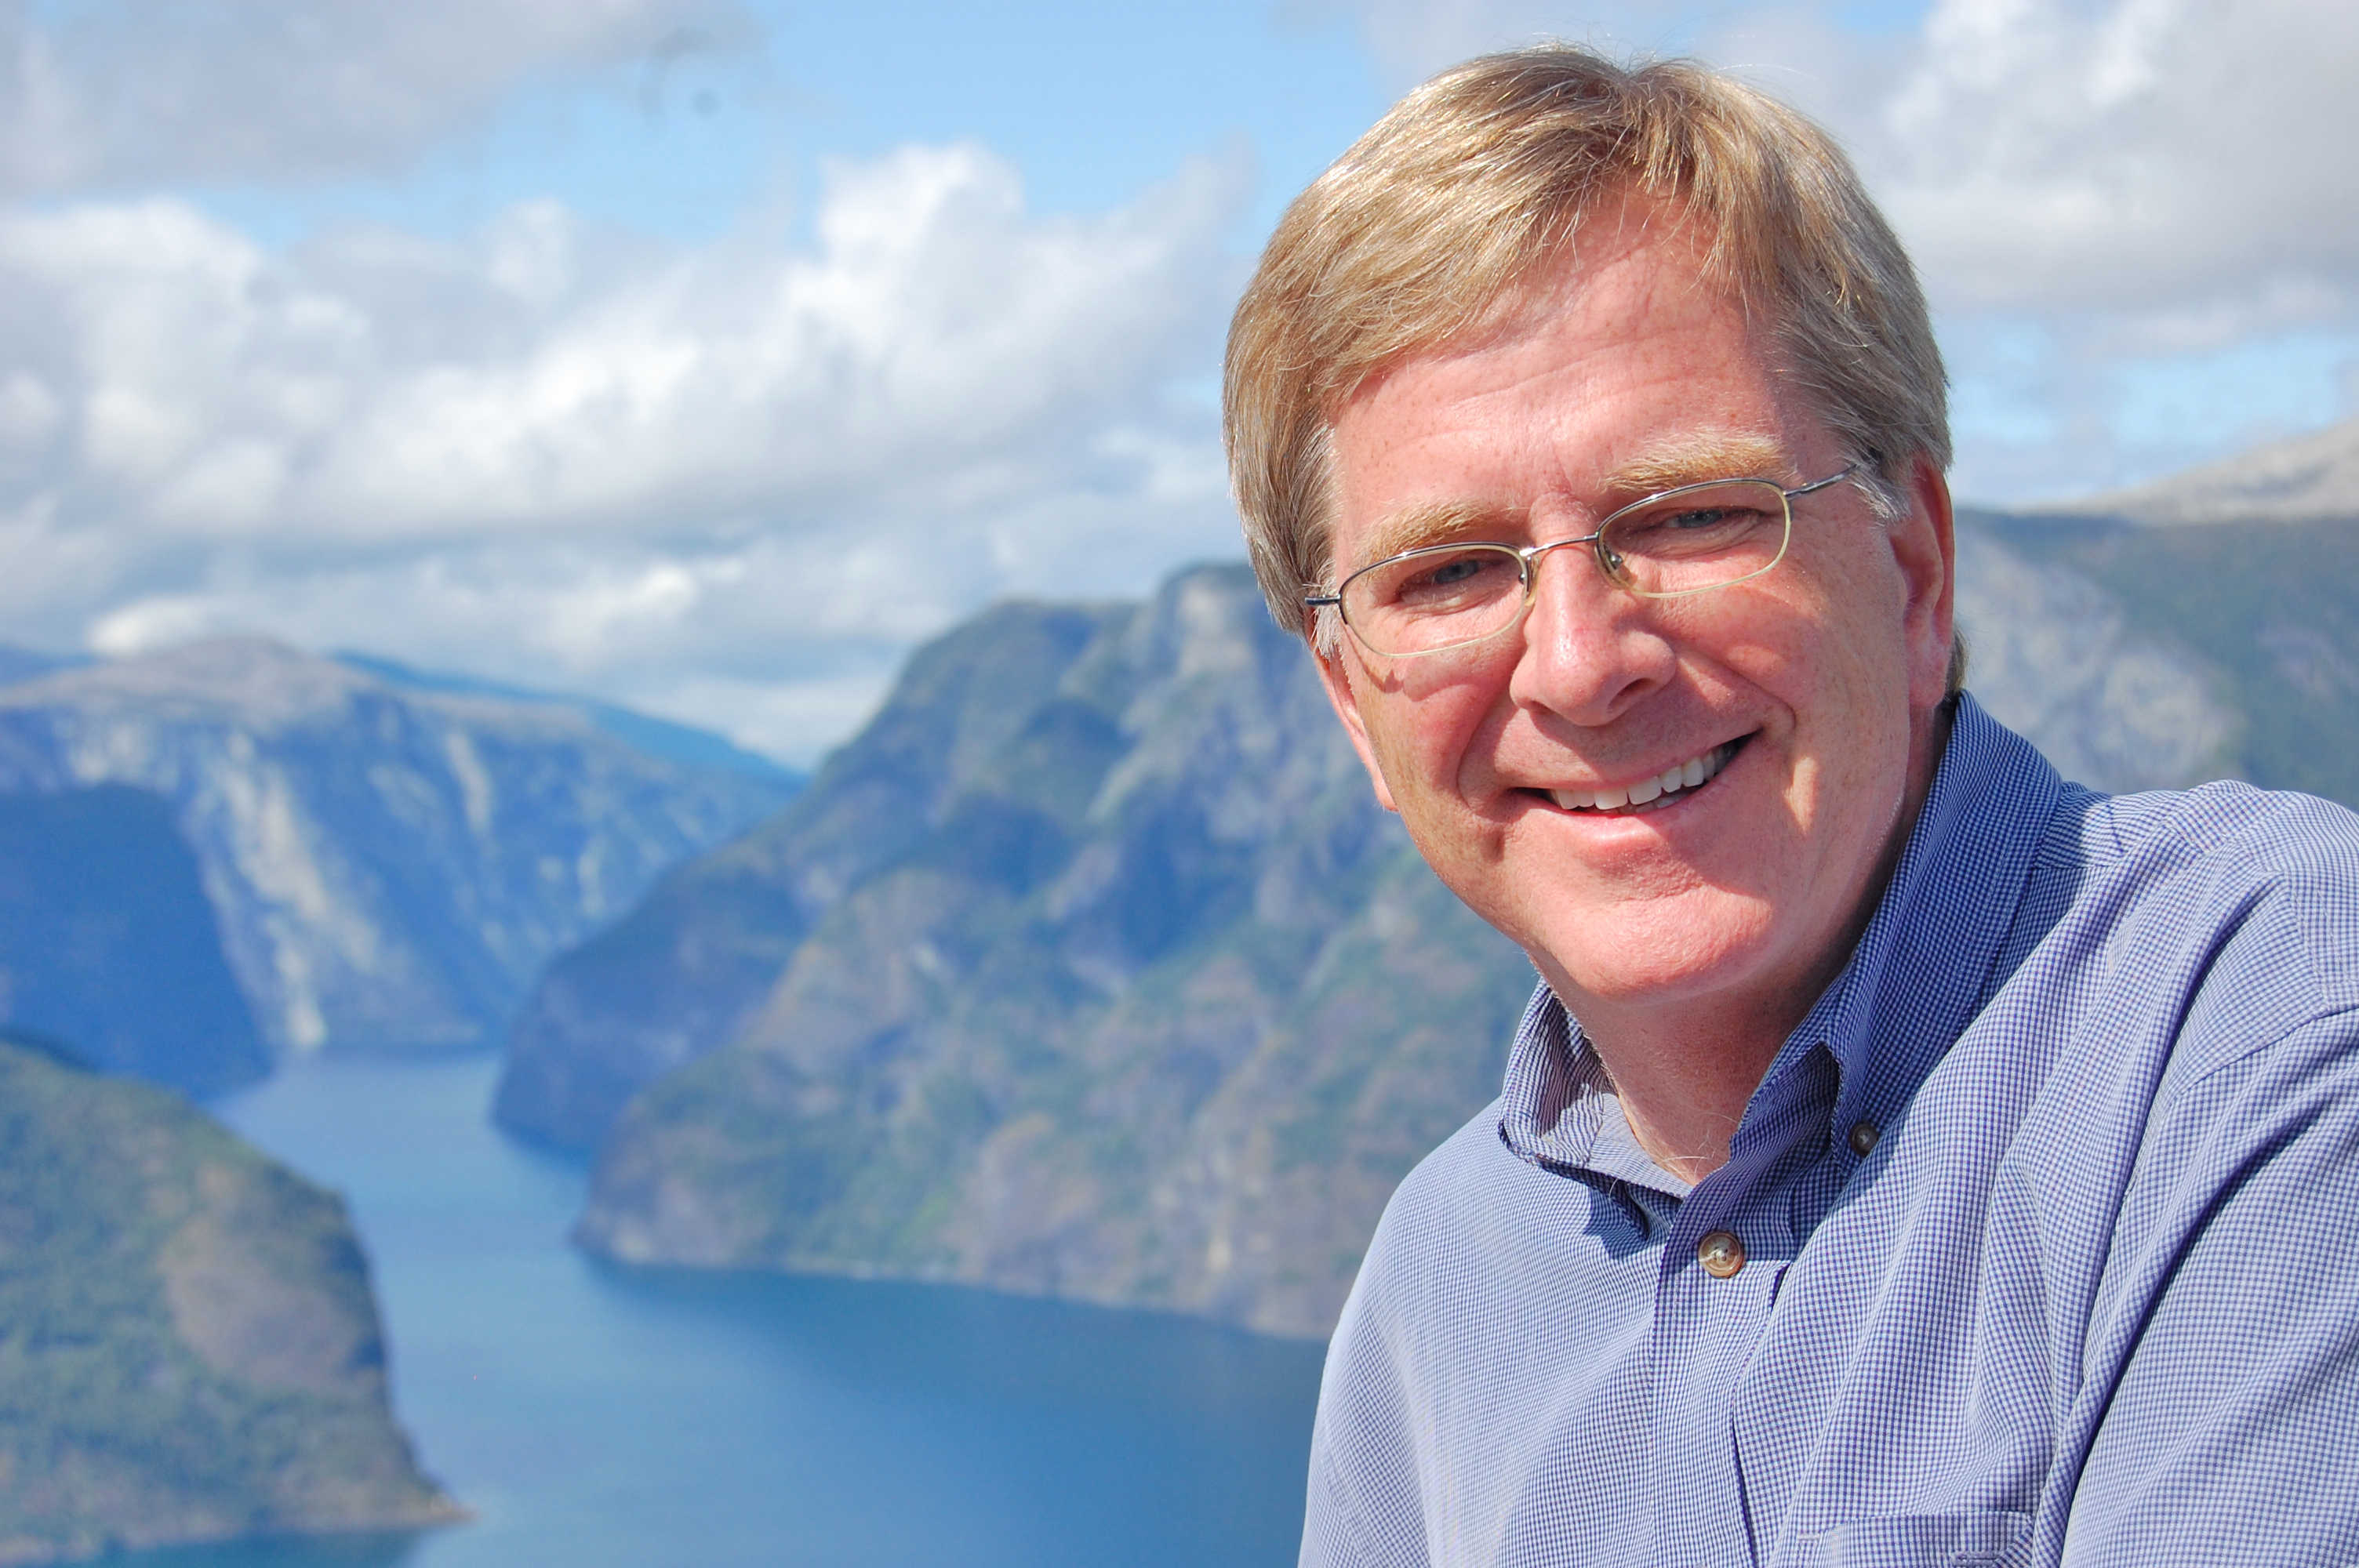 Unanswered Issues With Rick Steves Turkey Tour Exposed